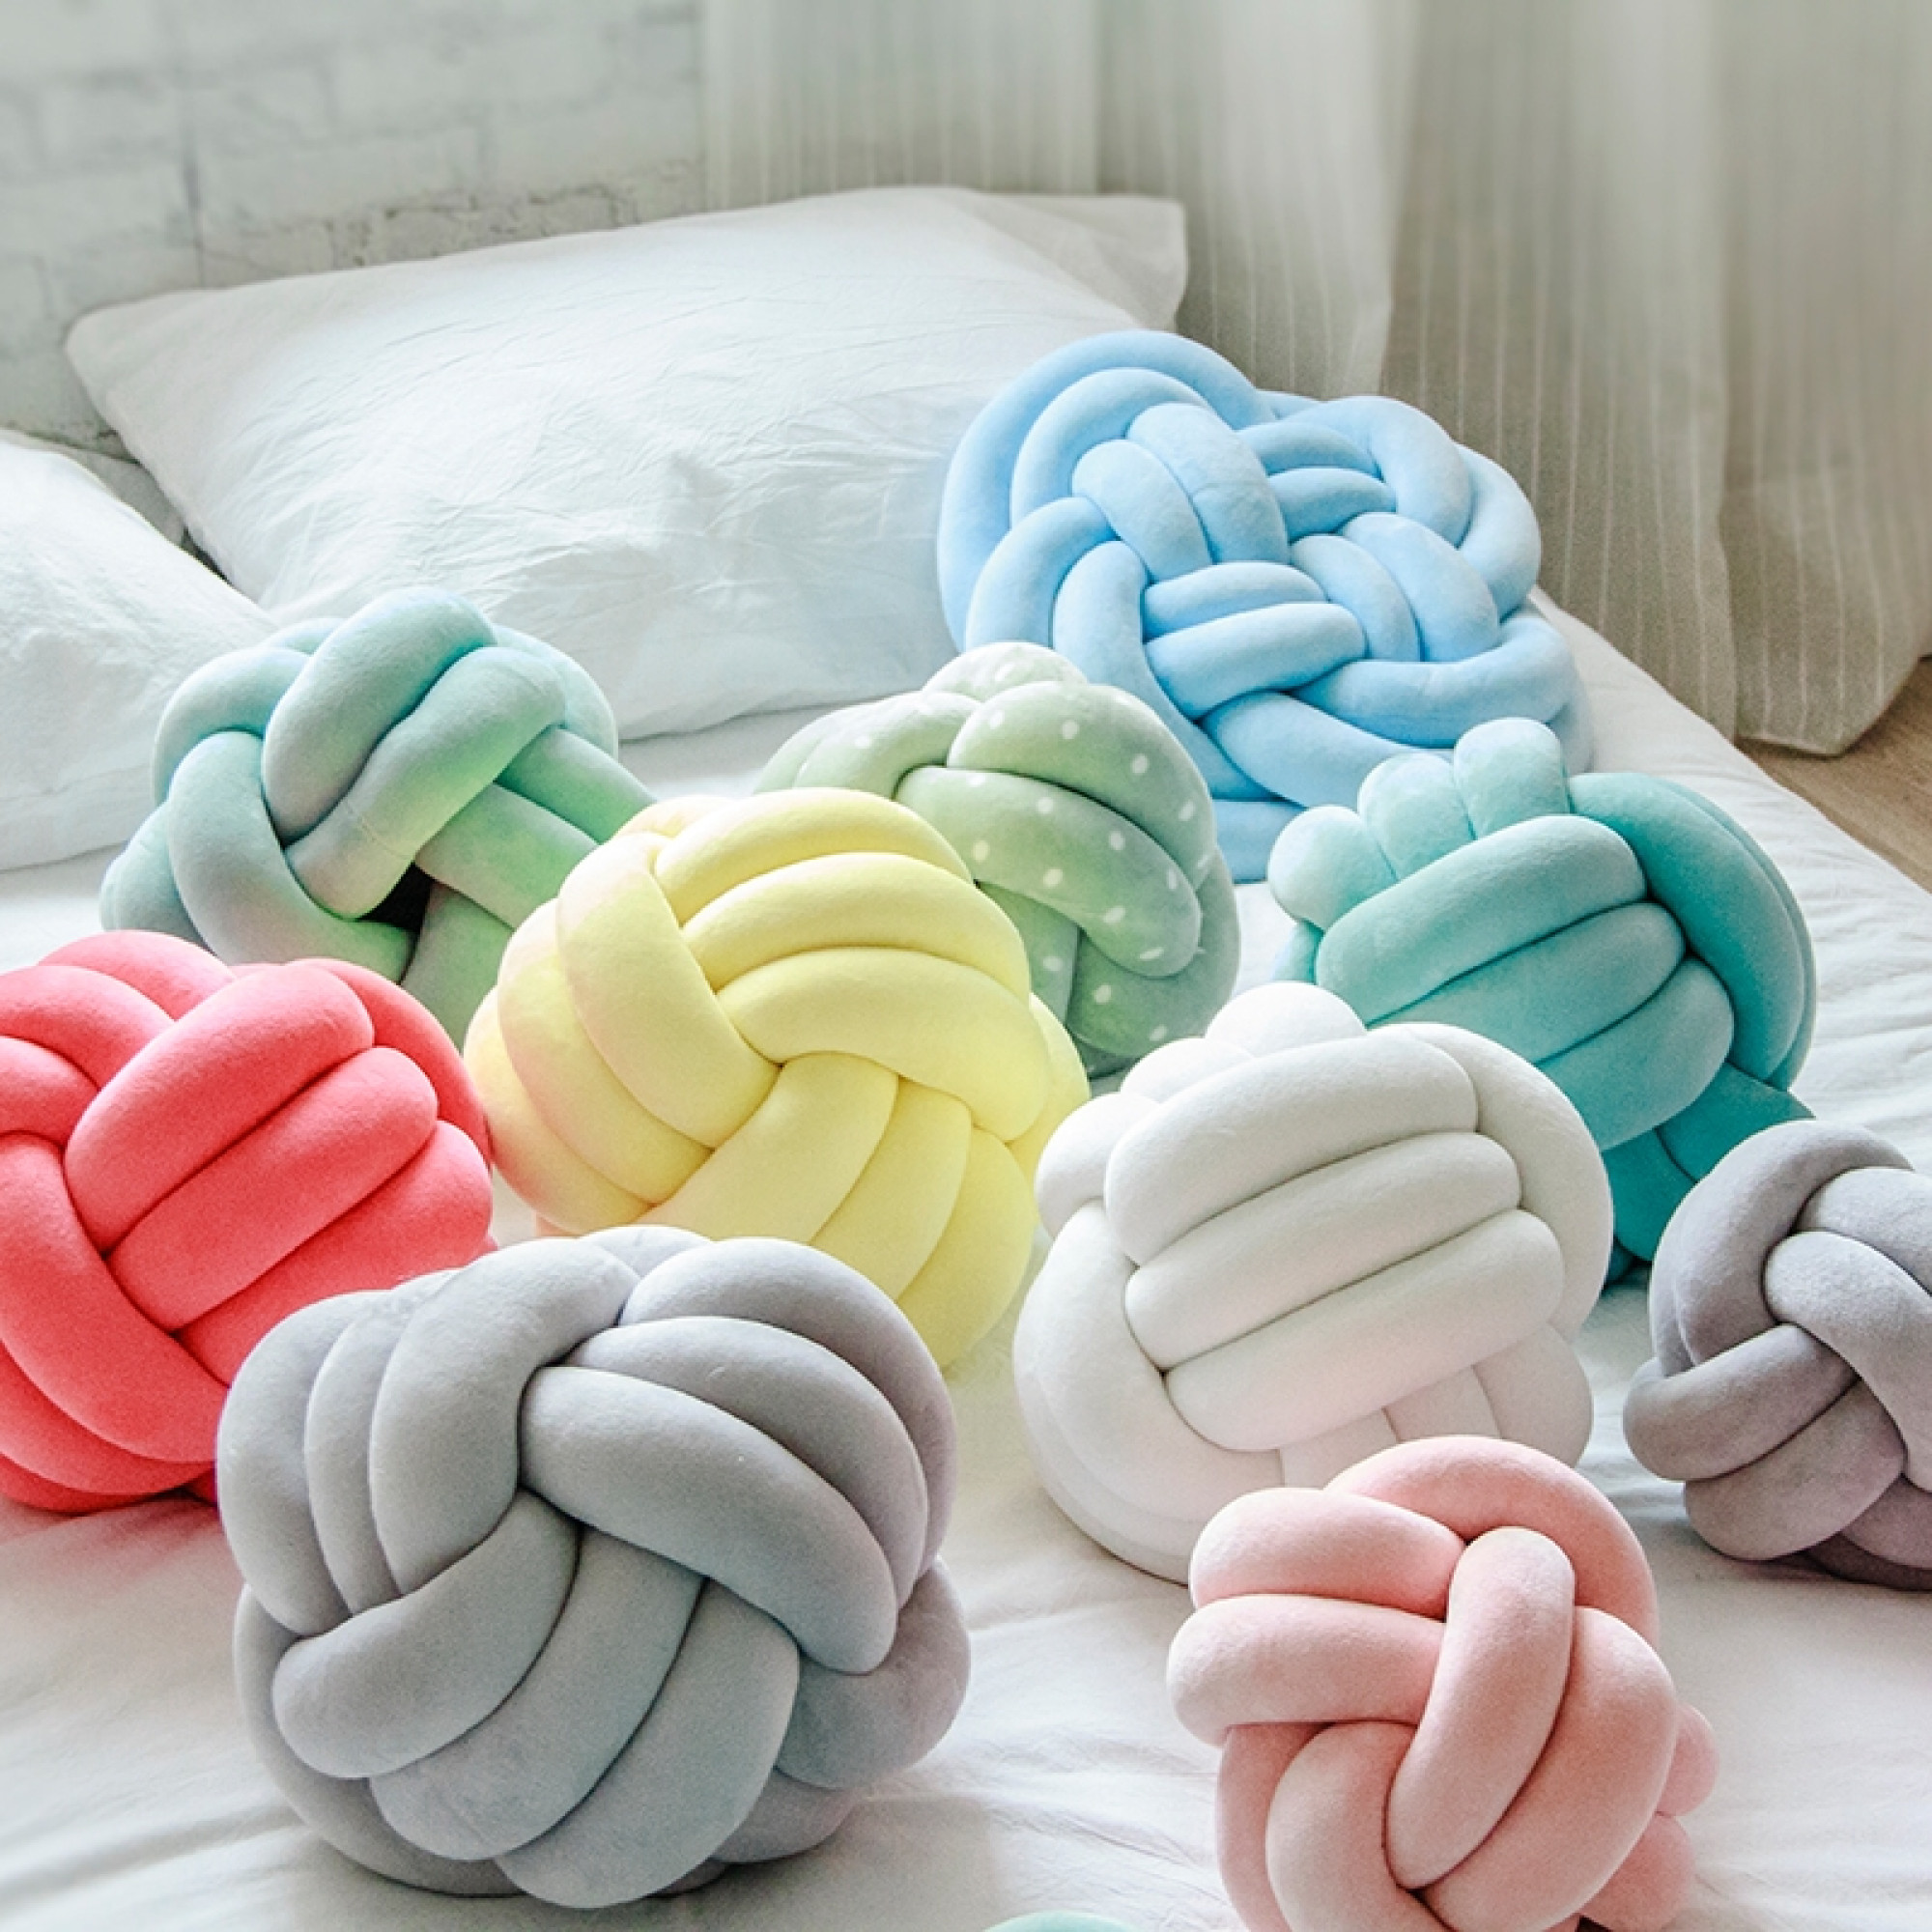 Delos Knot Cushion Mint Furniture Home Decor Fortytwo